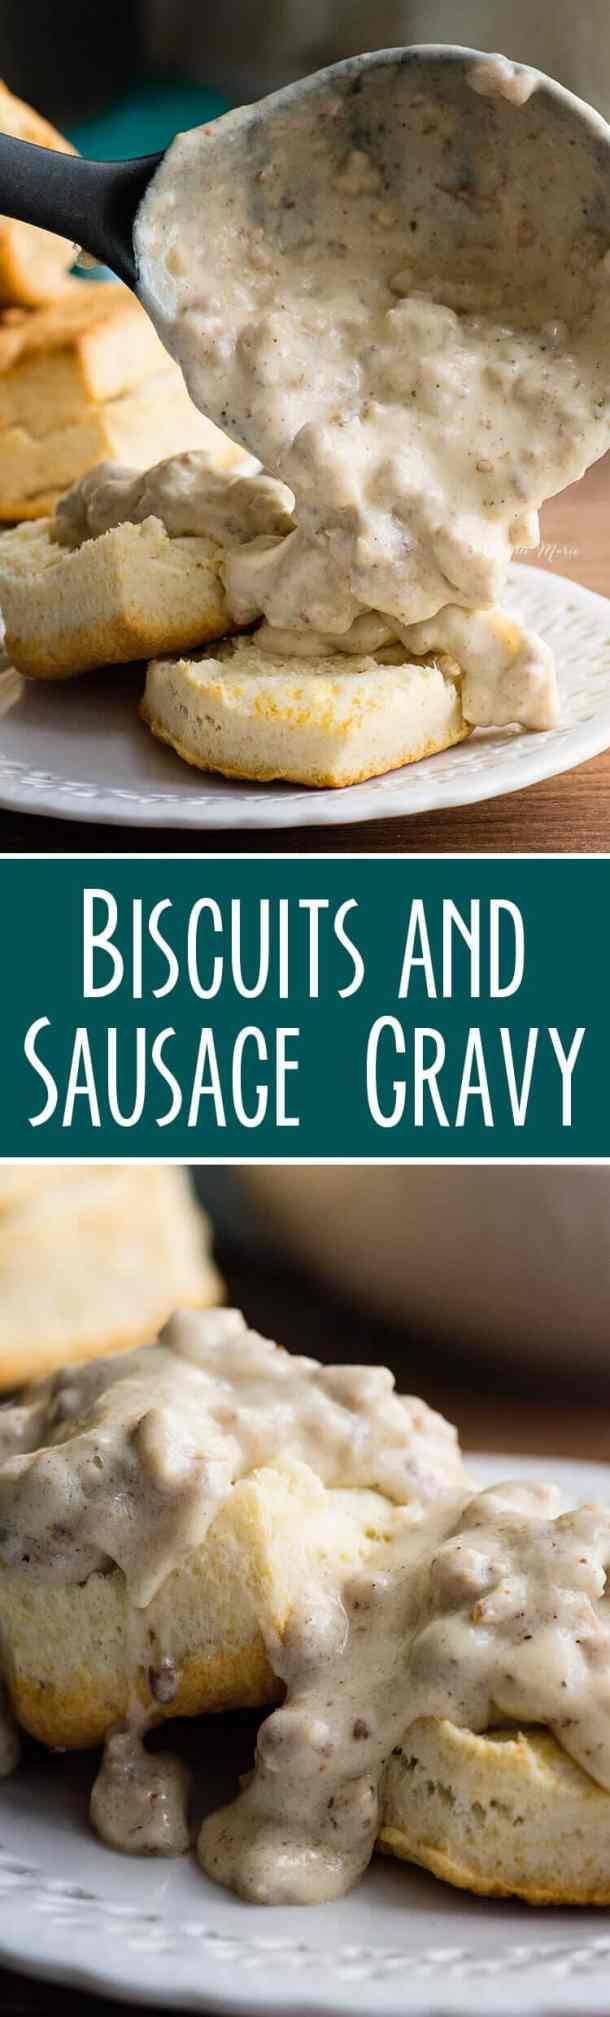 just 6 easy ingredients to make this Biscuits and Gravy recipe!